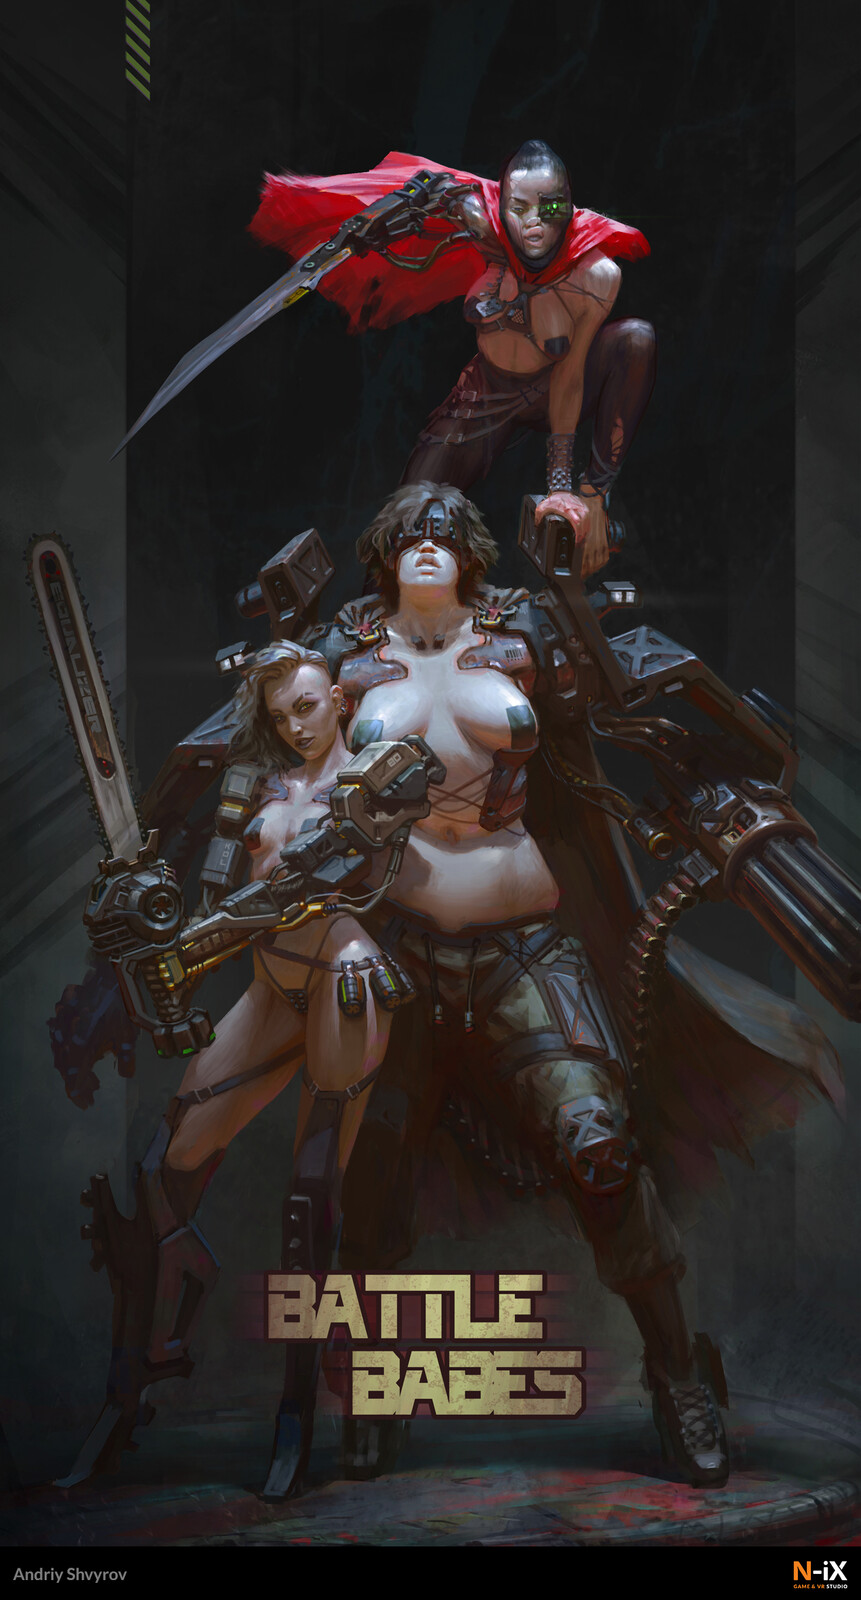 """The """"Battle Babes"""" poster by Andriy Shvyrov."""